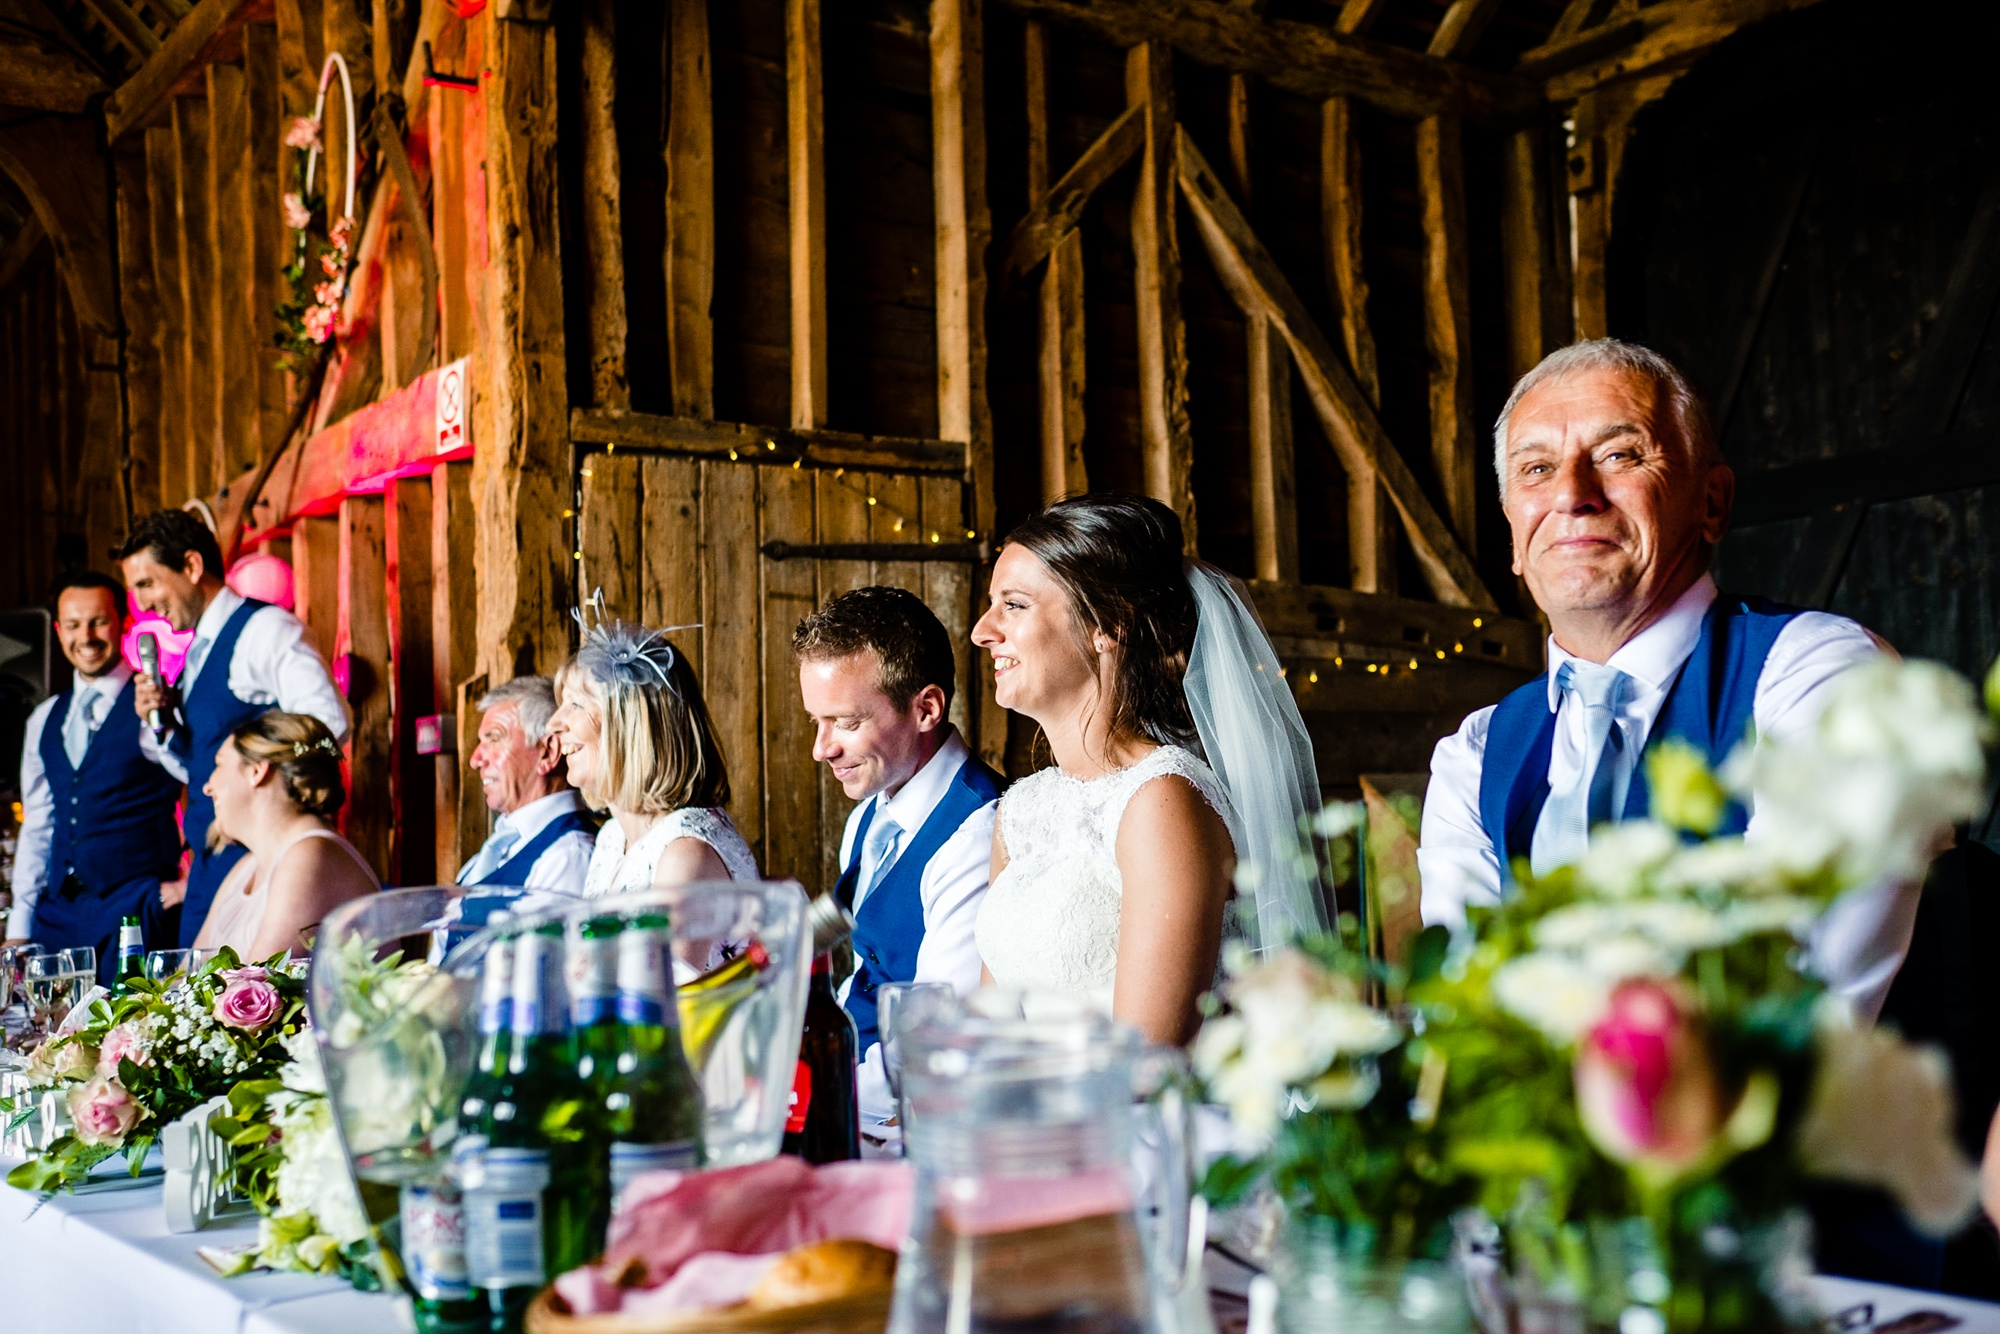 Essex Barn Upminster Wedding Photographer-161.jpg